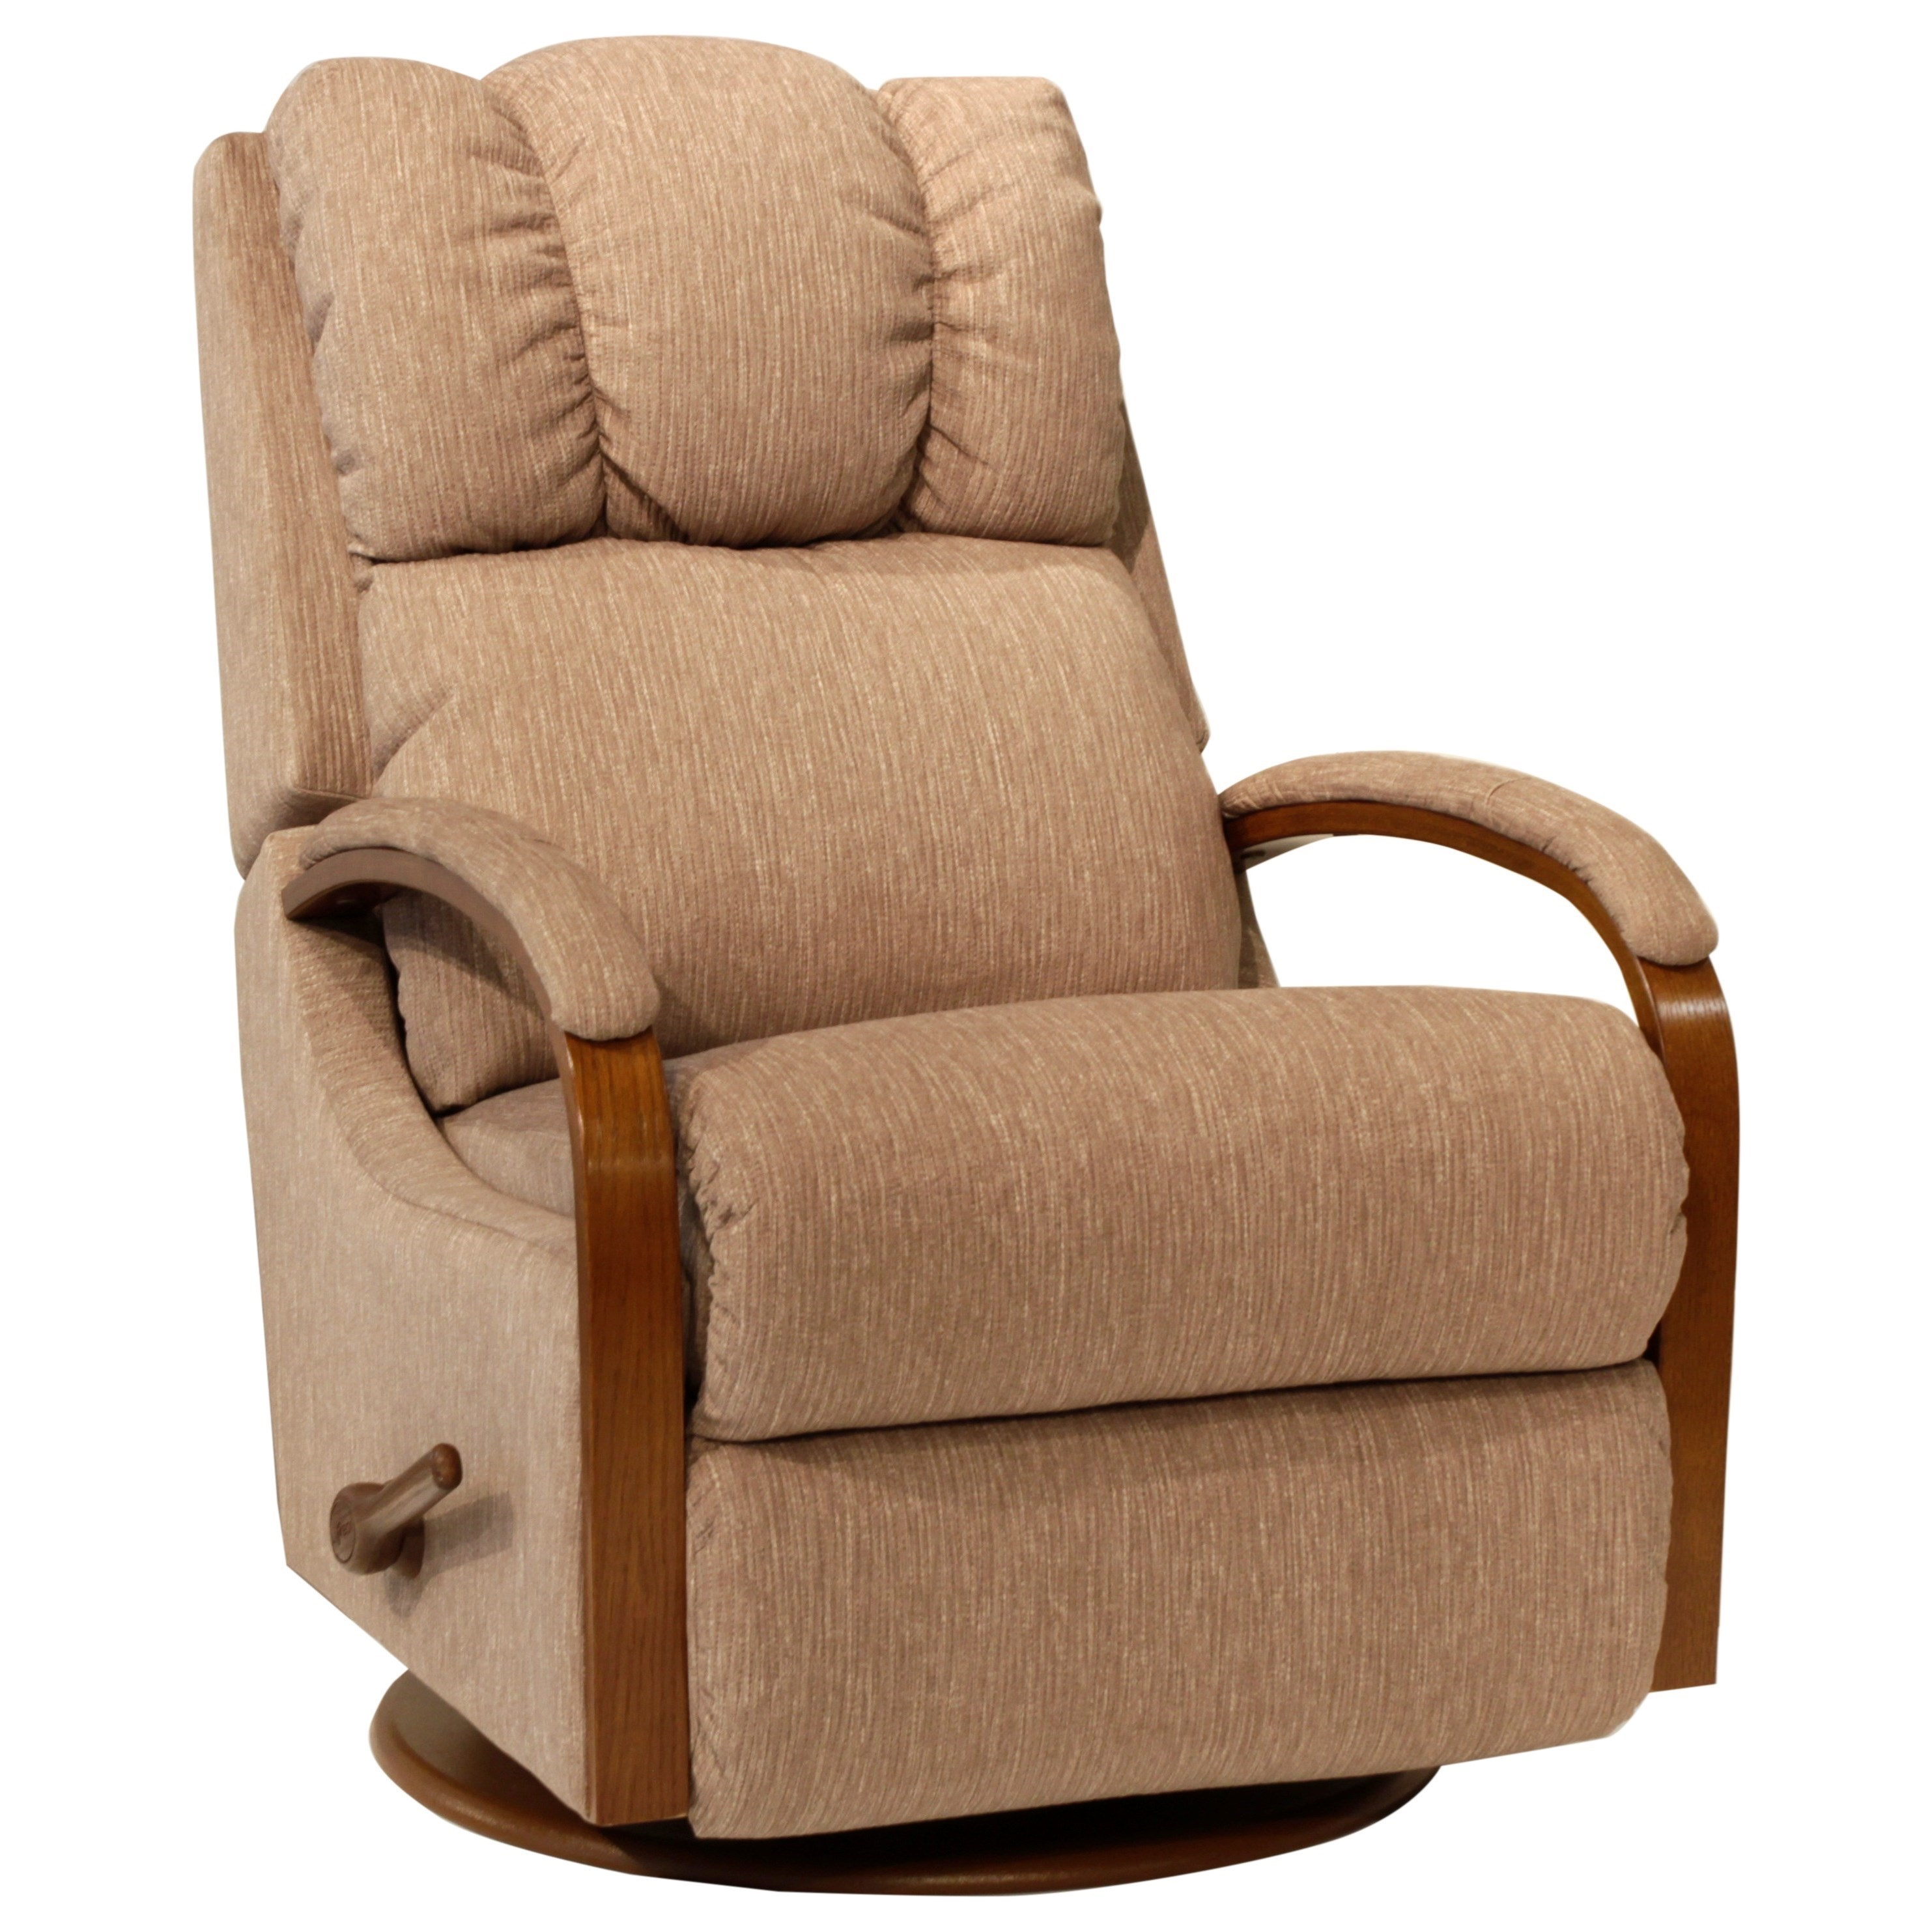 La Z Boy Recliners Harbor Town Reclina Rocker® Reclining Chair